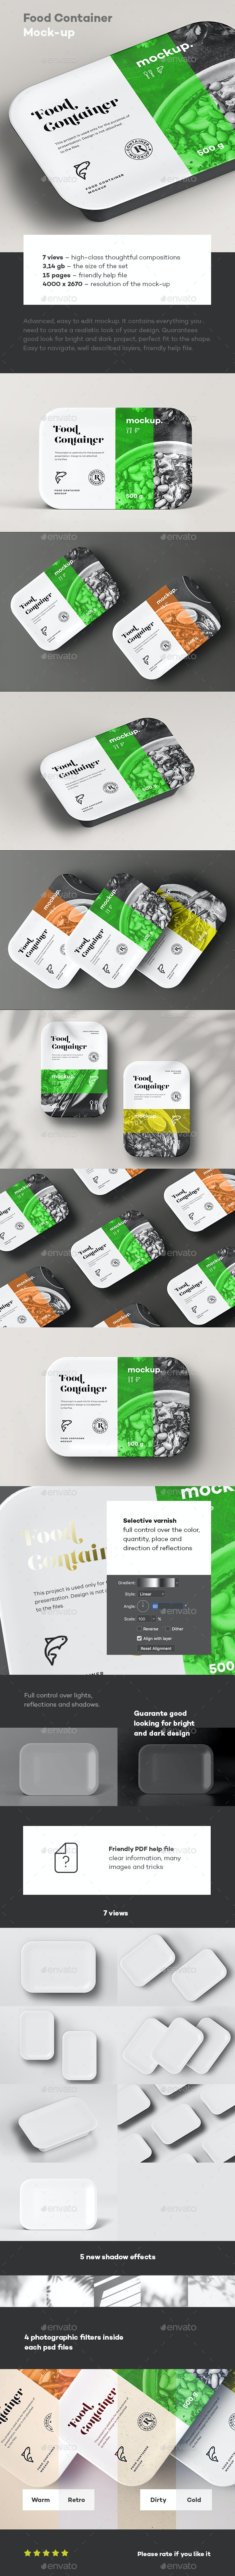 Food Container Mock-up - Food and Drink Packaging